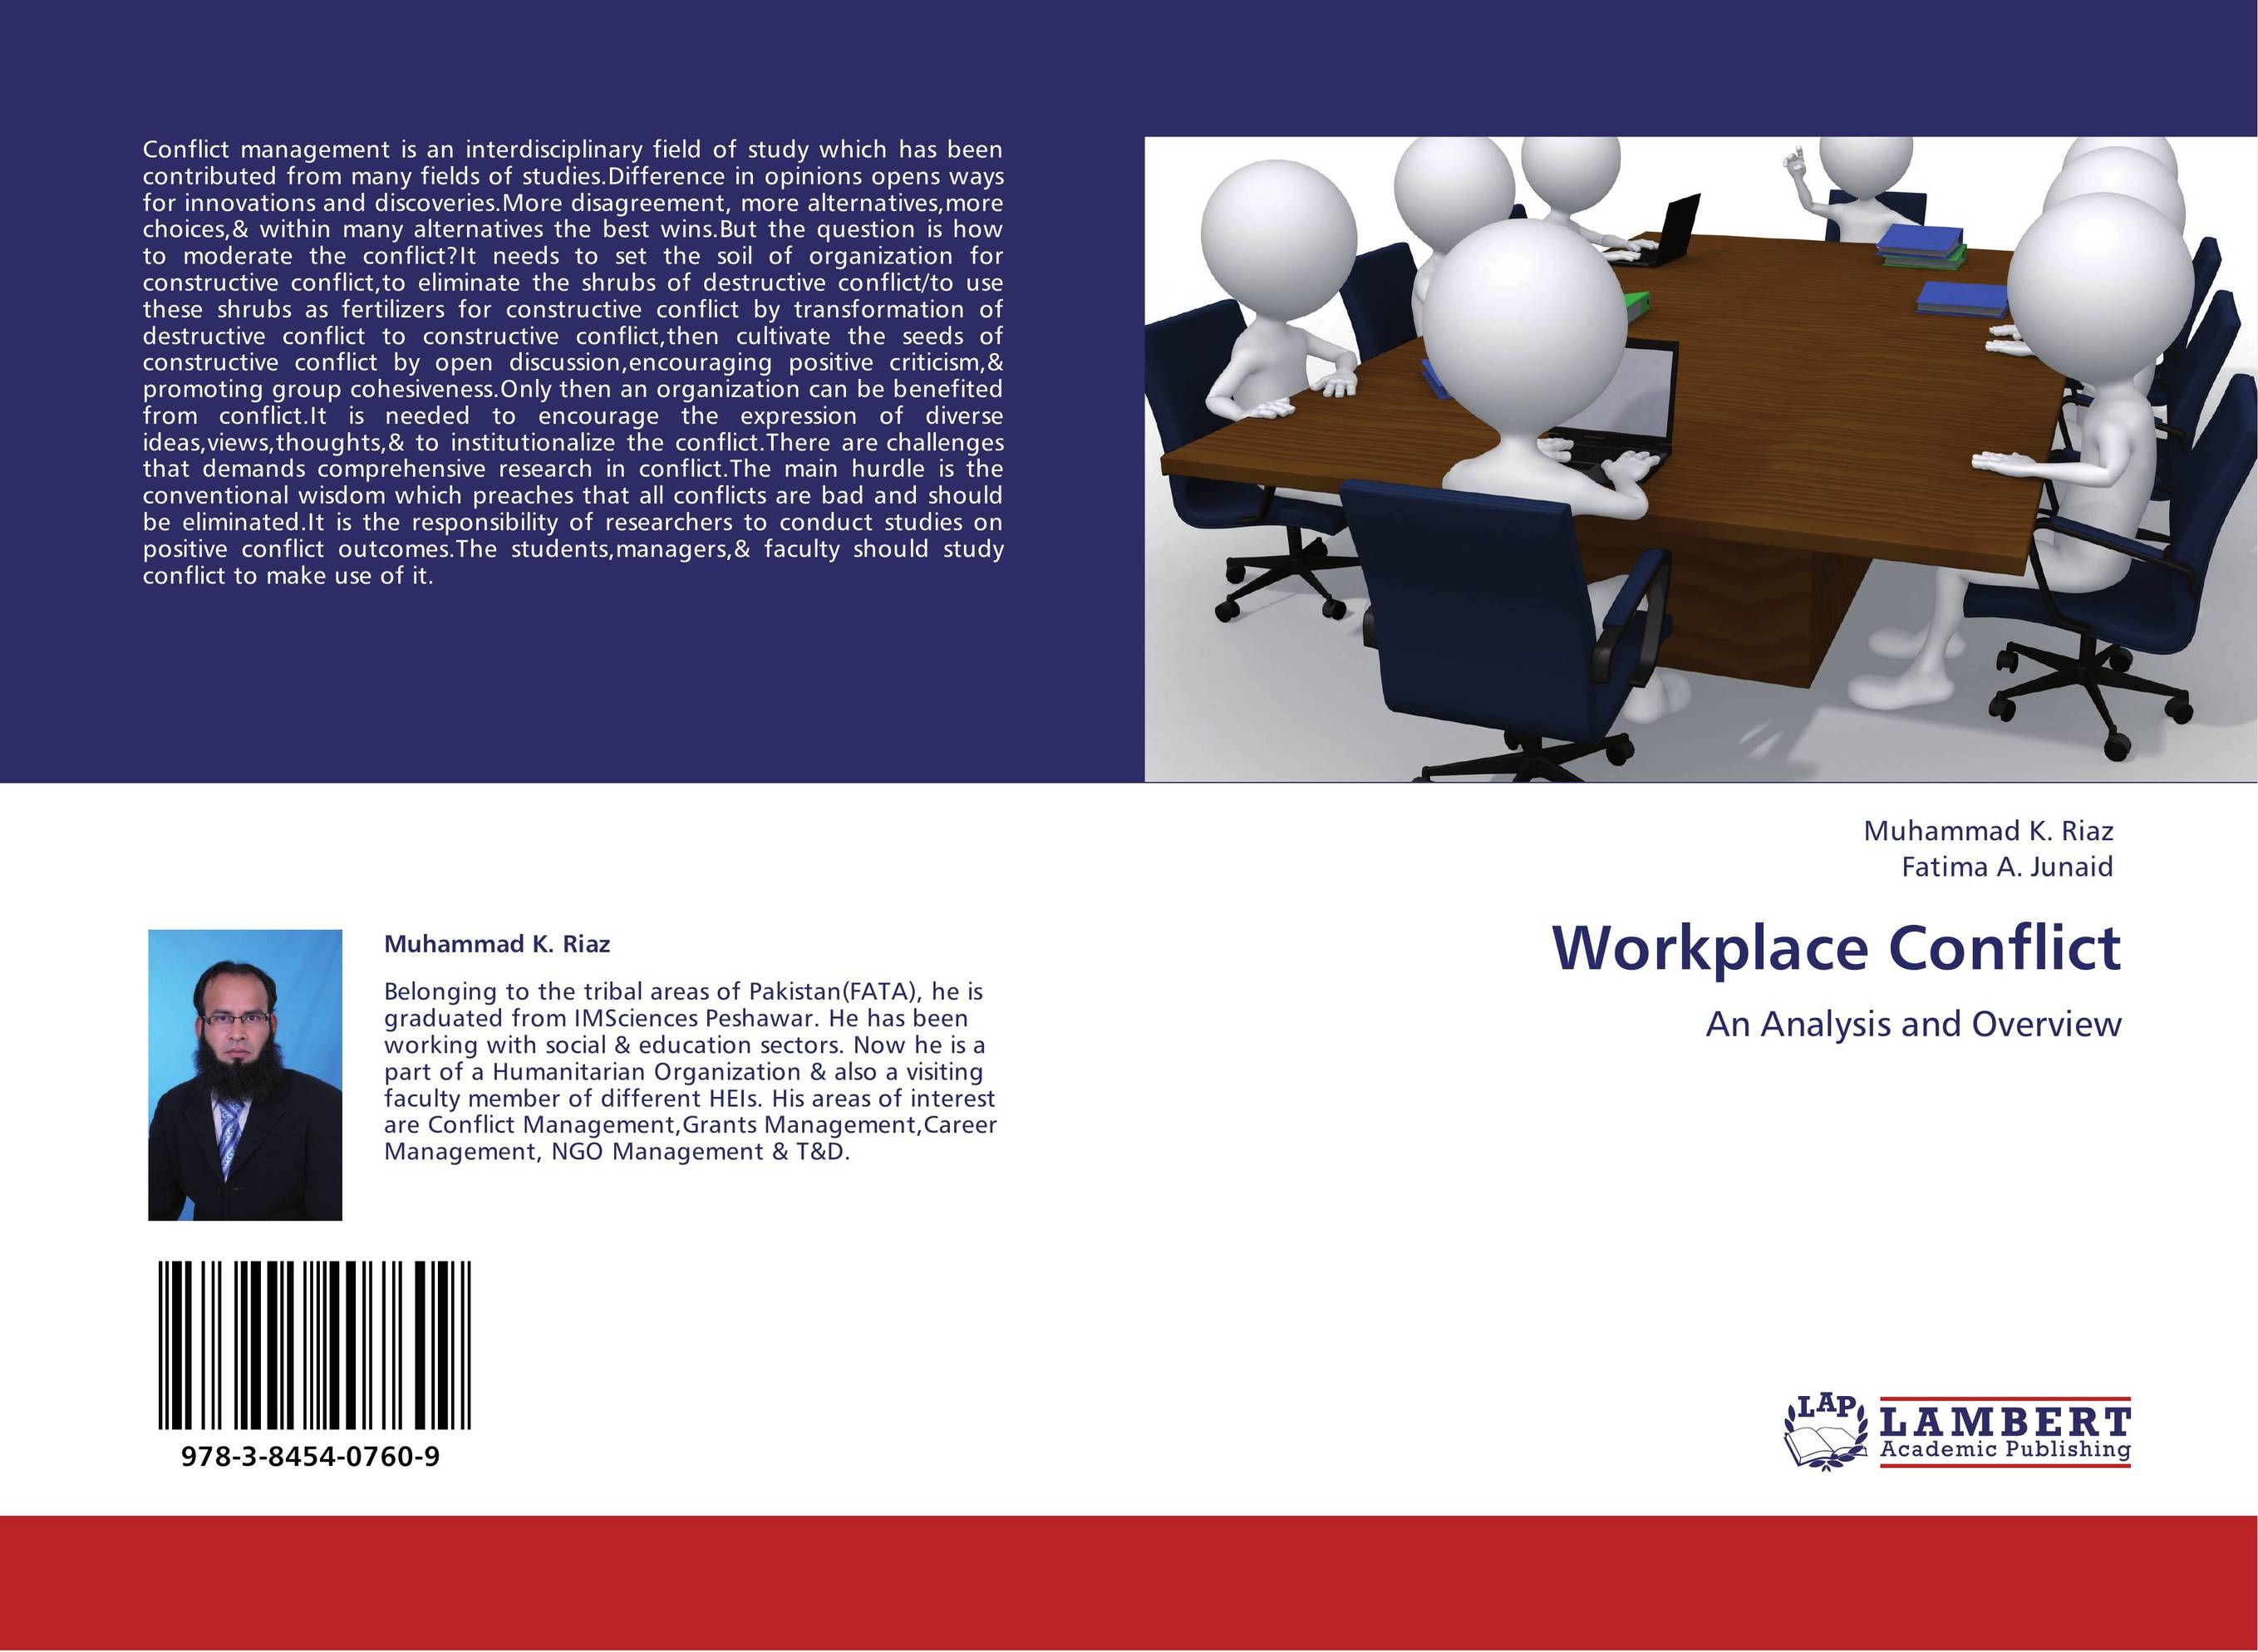 thesis conflict management workplace Research paper workplace confl ict management: awareness and use of  workplace conflict management: awareness and use of the acas code of practice and  including reduced management time dealing with workplace problems, lower productivity loss from absence, turnover, and stress/health problems, as well as.